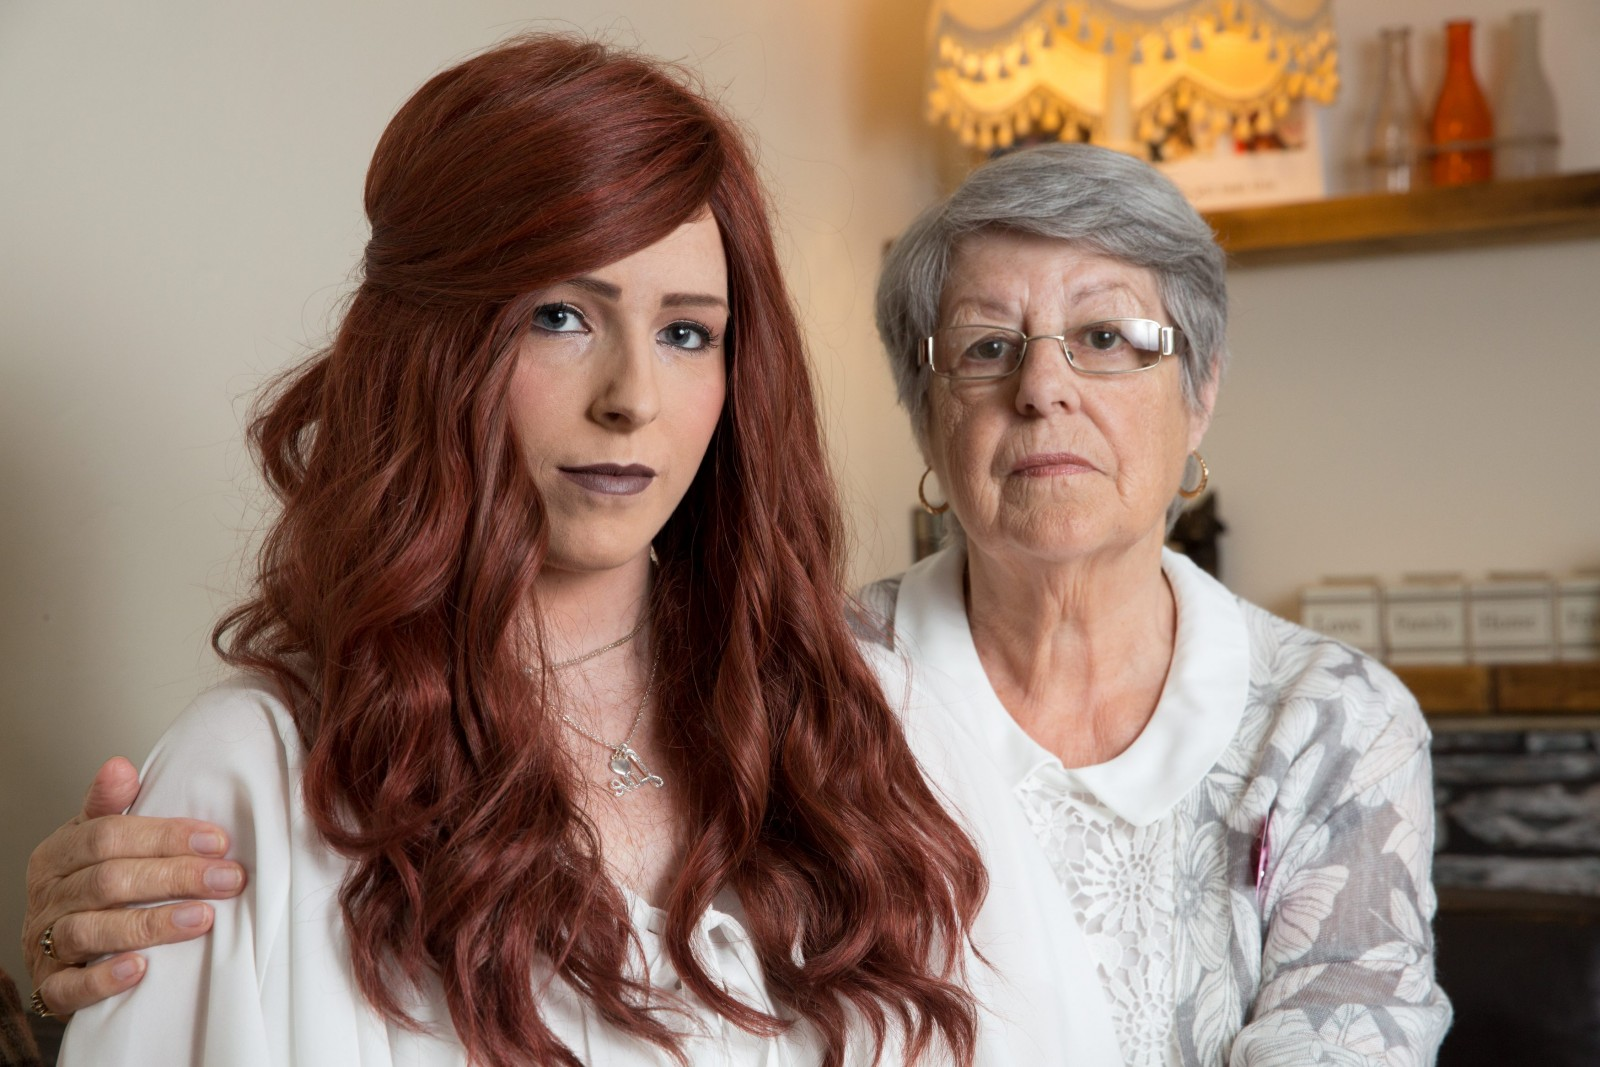 Brave 22-year-old and her gran are BOTH diagnosed with breast cancer in the same week